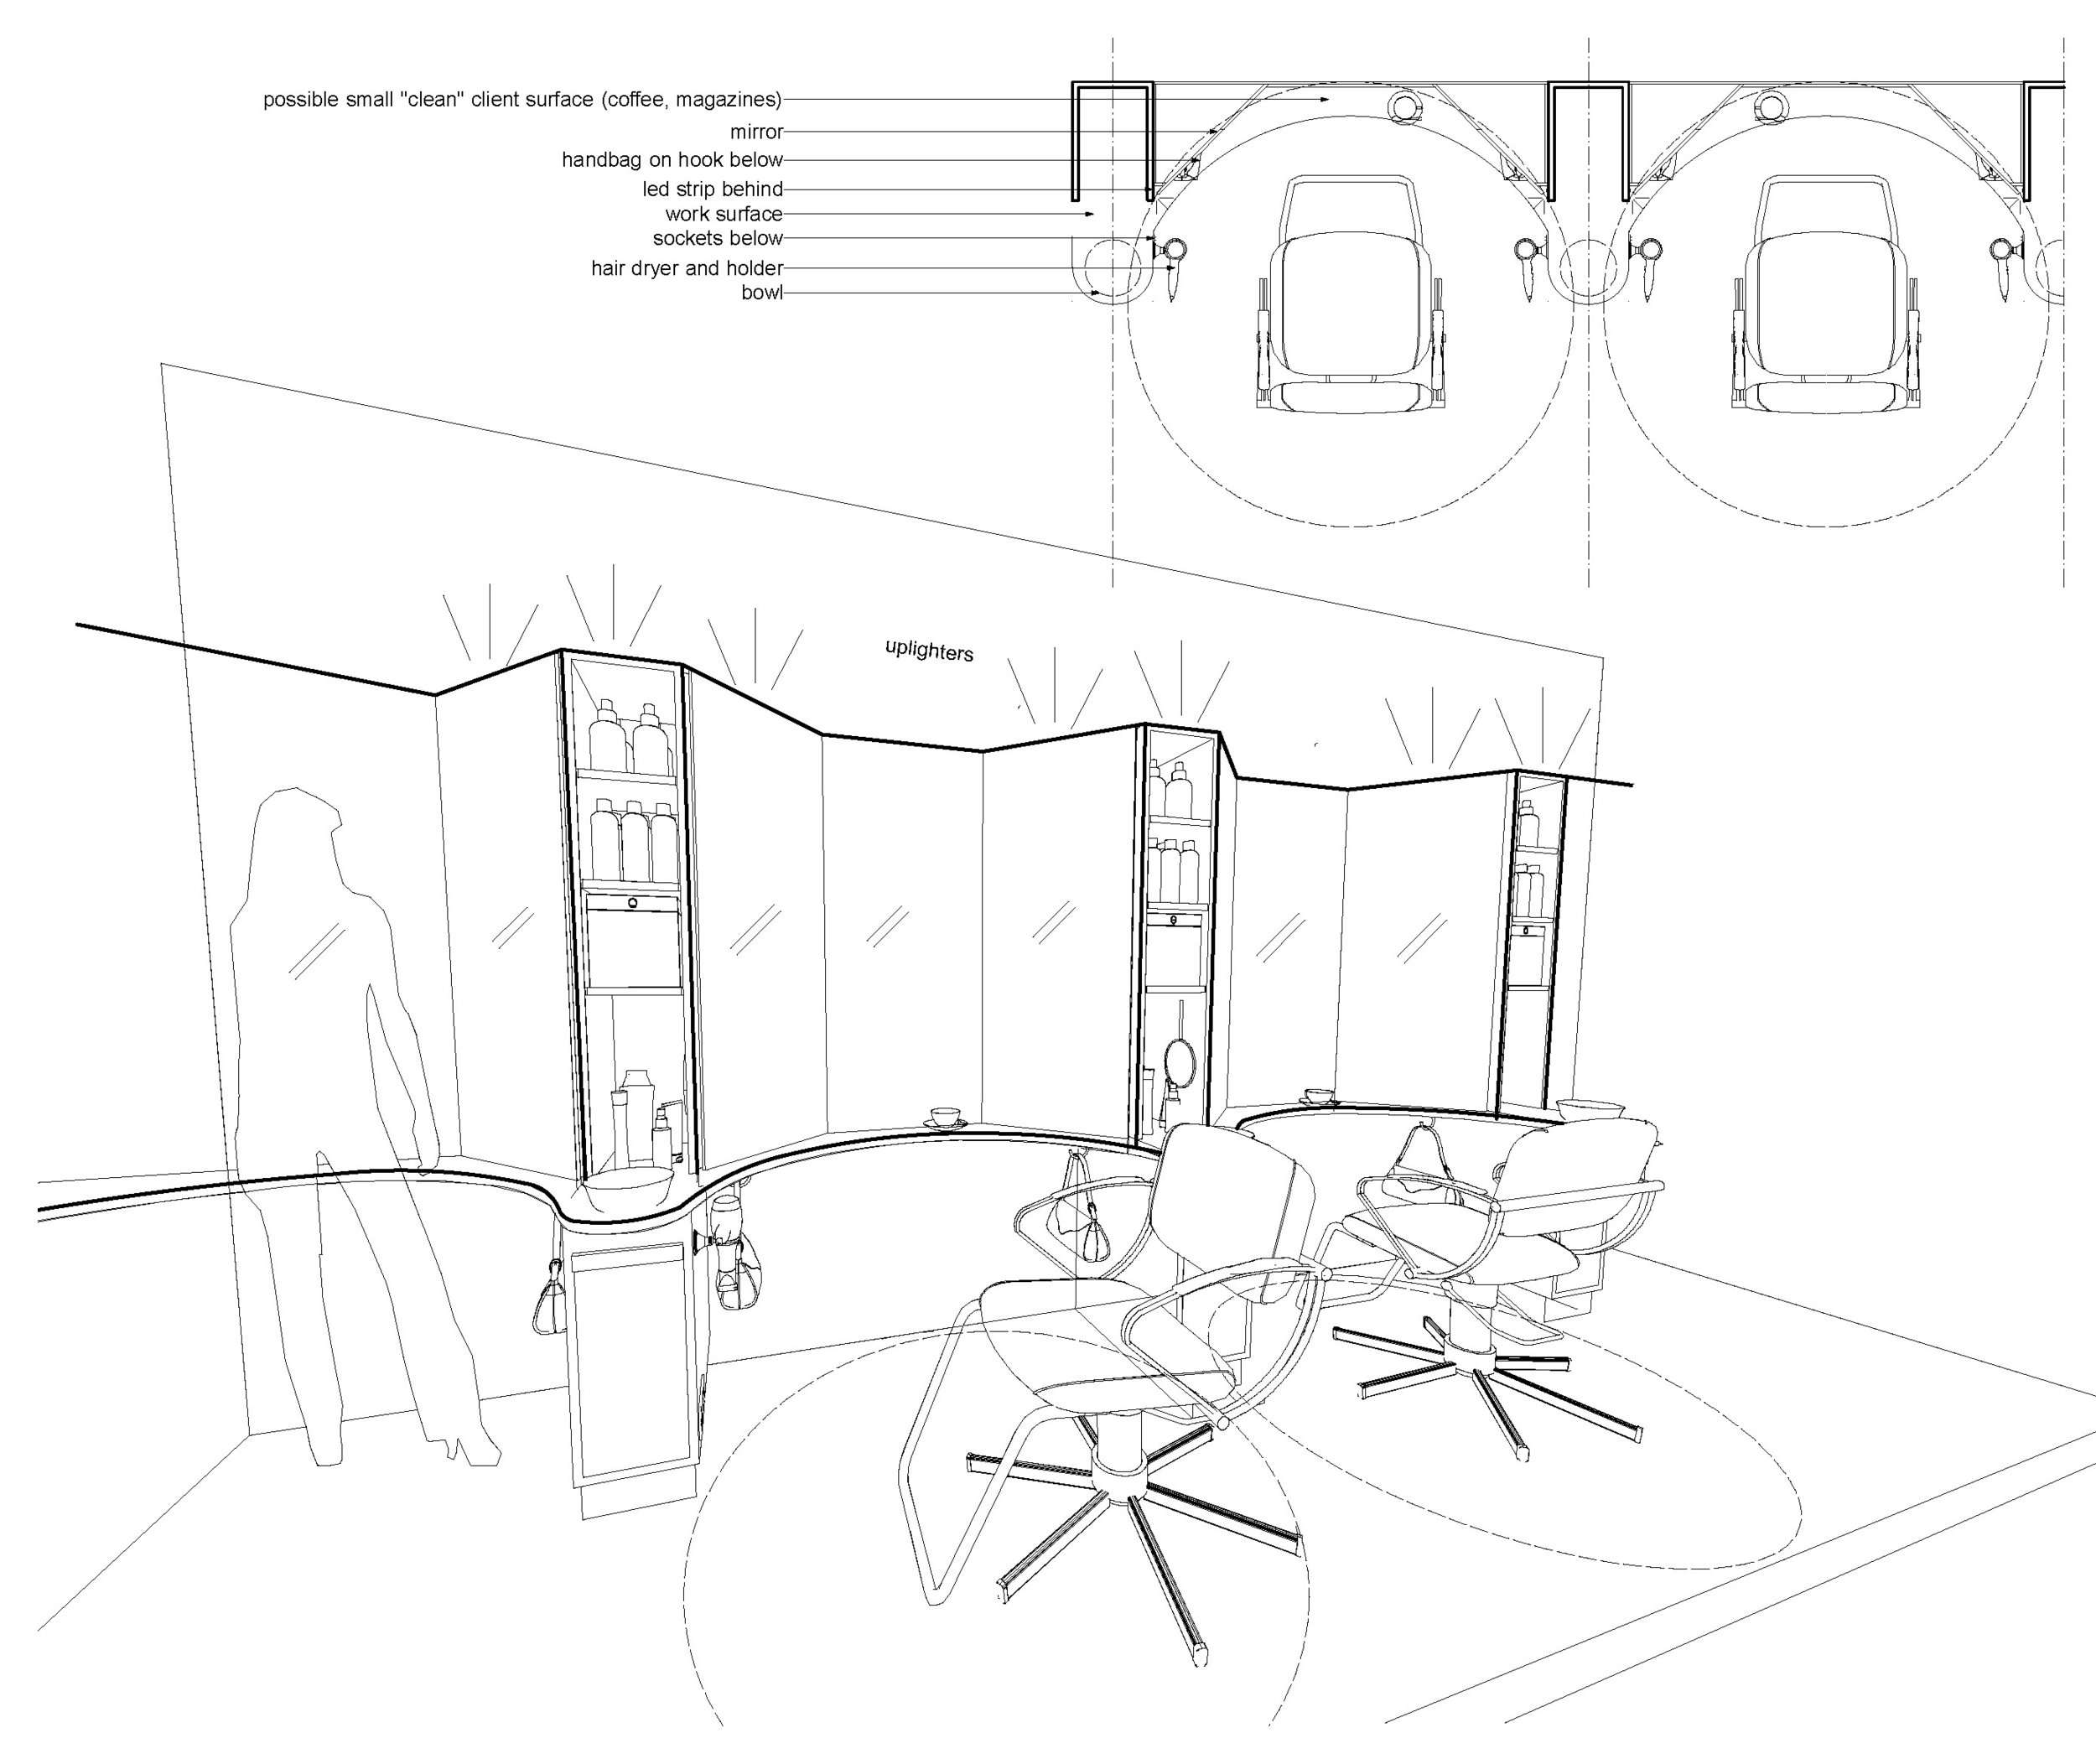 FINEarchitecture_BrooksBrooks_Sketch_6.jpg